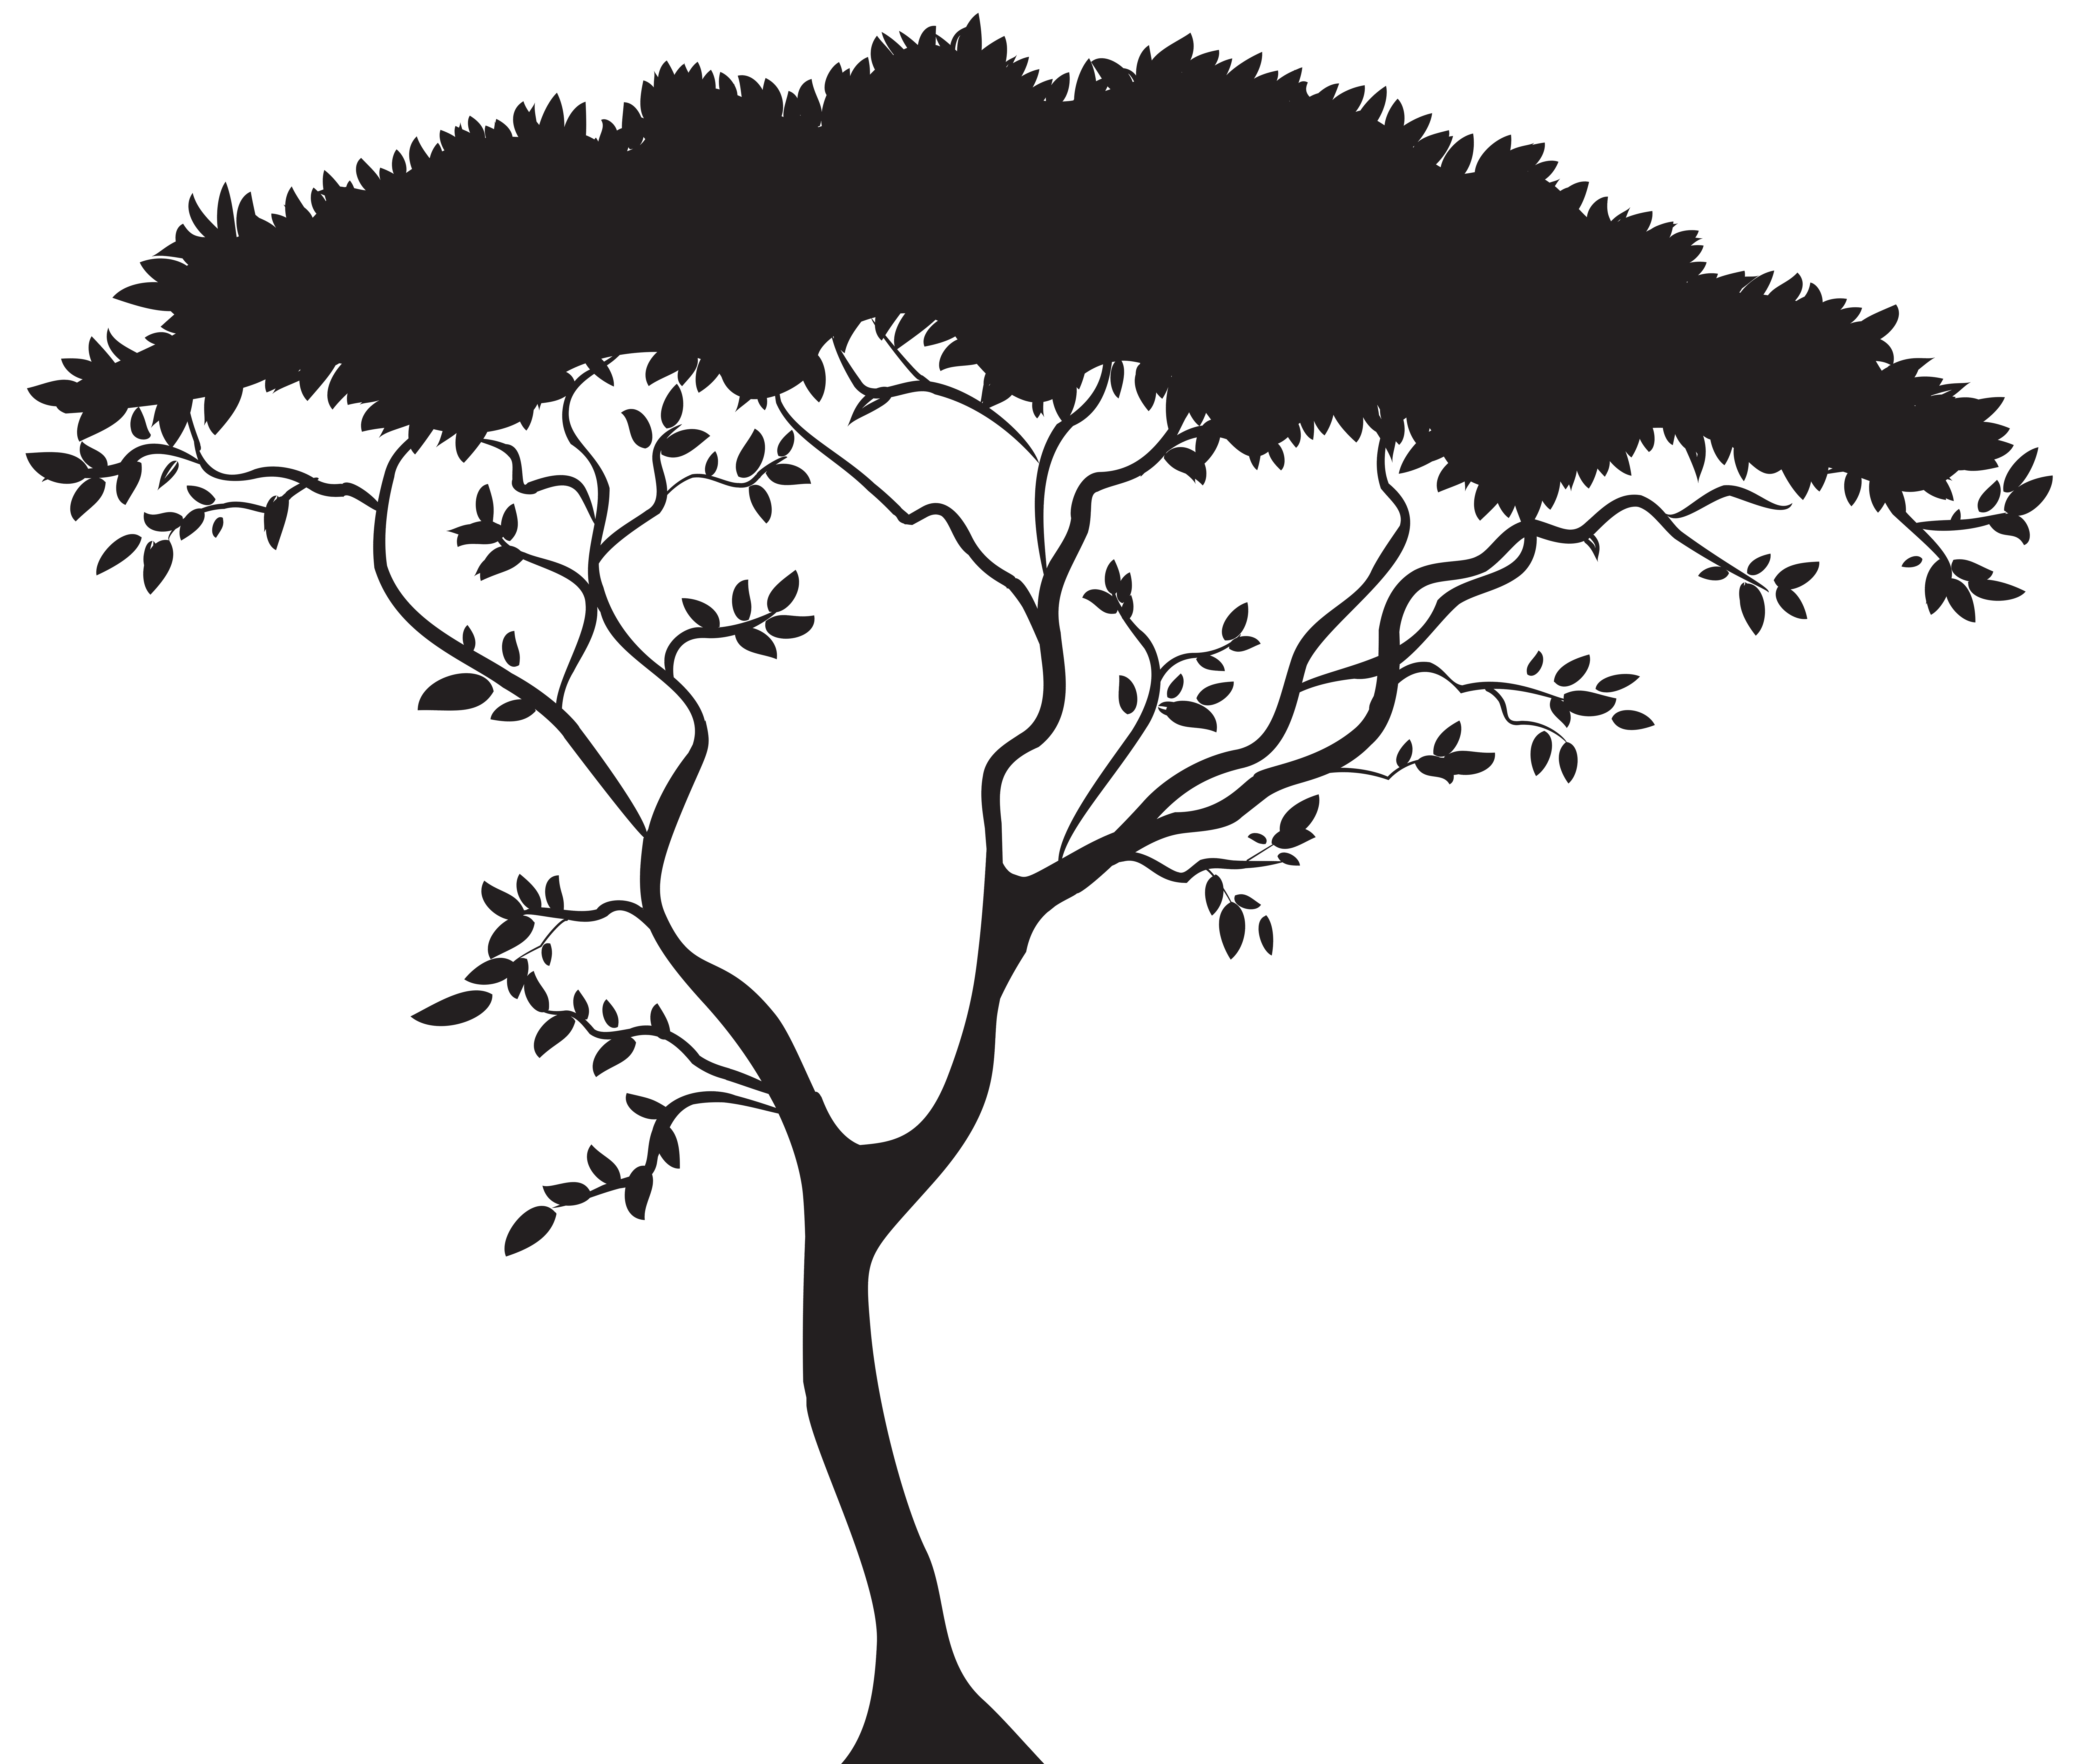 African tree silhouette png. Clipart trees paddy